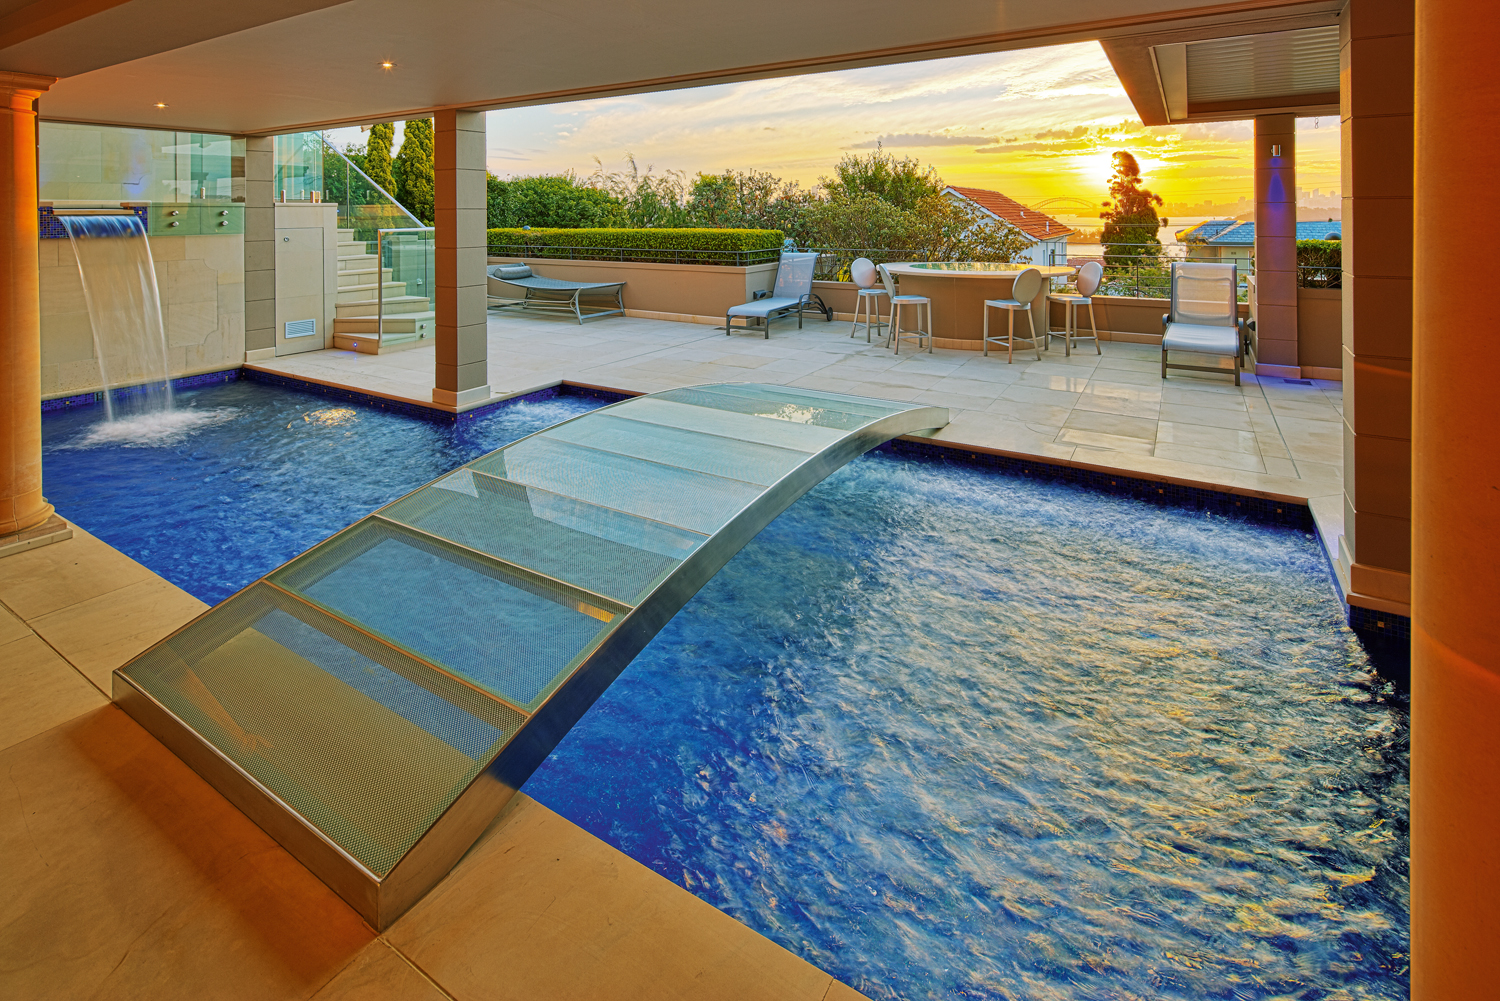 Pool with very cool bridge feature